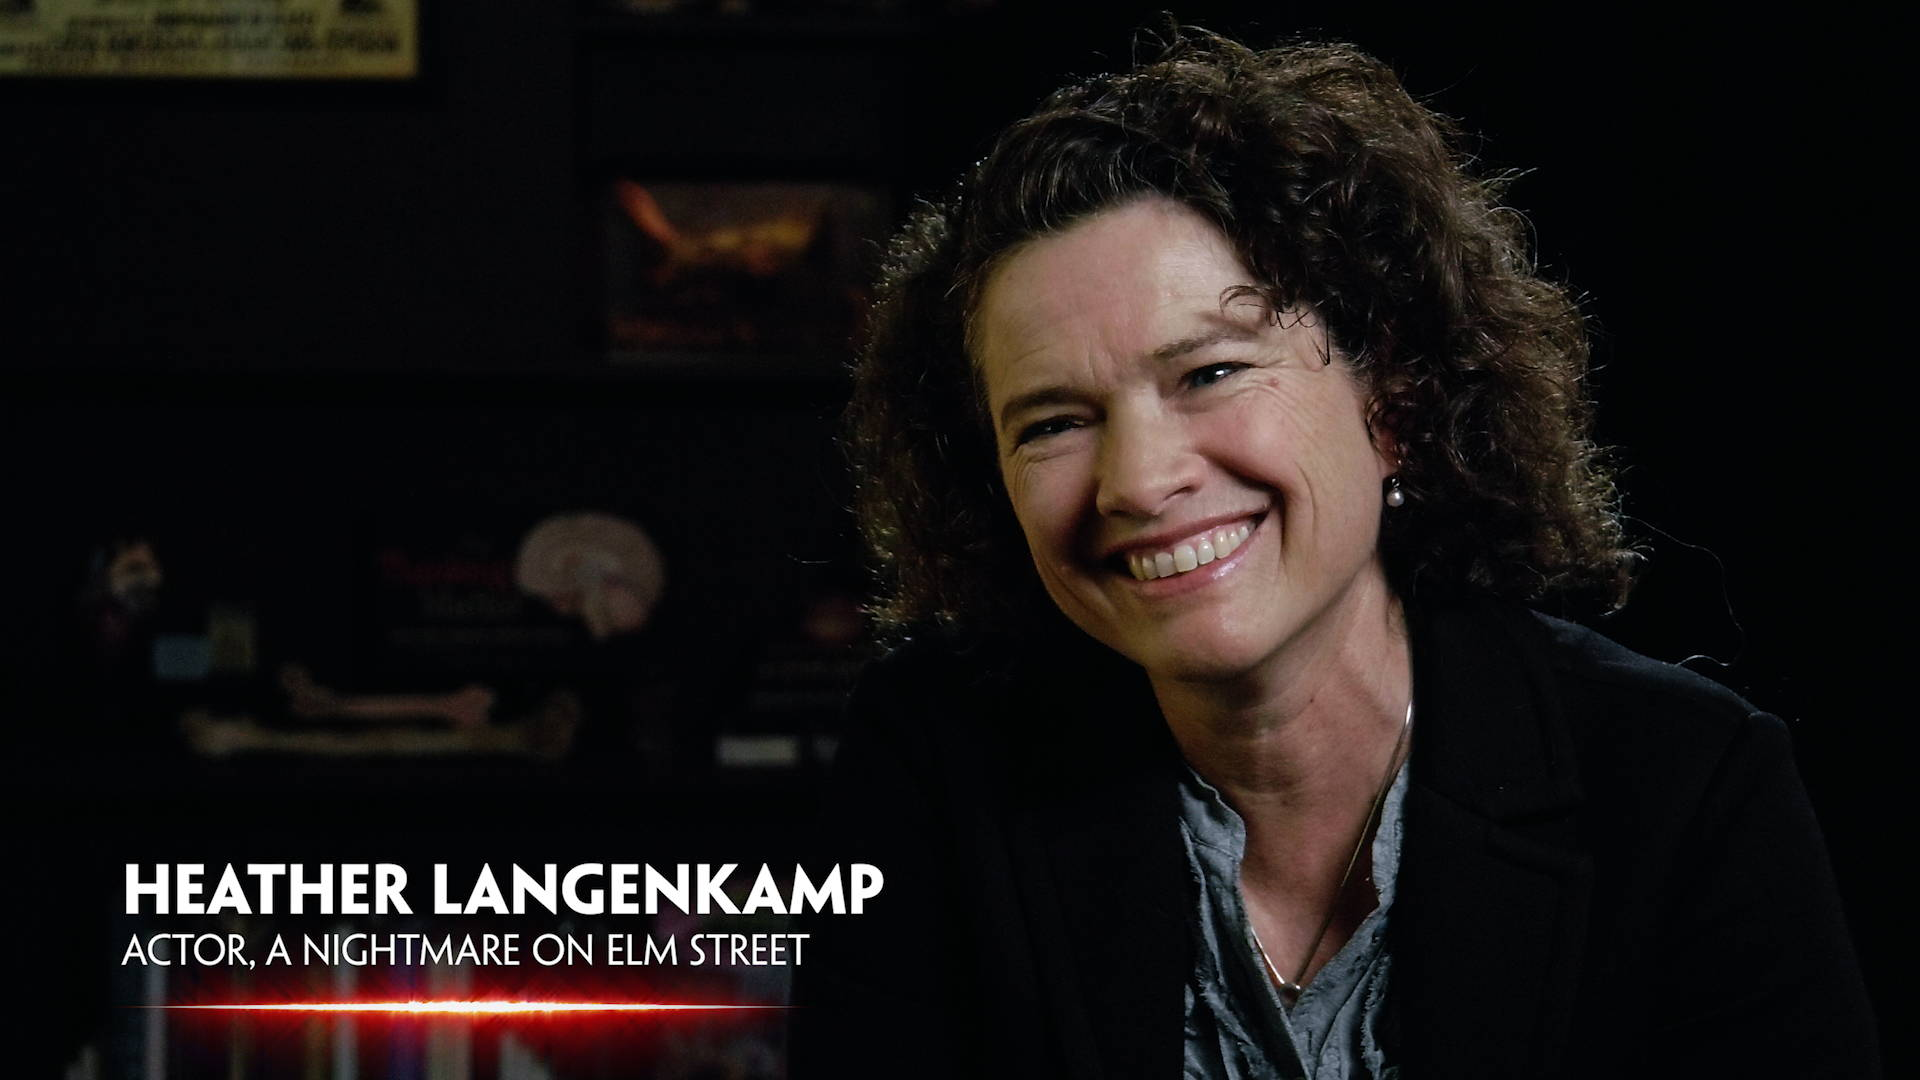 In Search of Darkness Part II: Heather Langenkamp interview